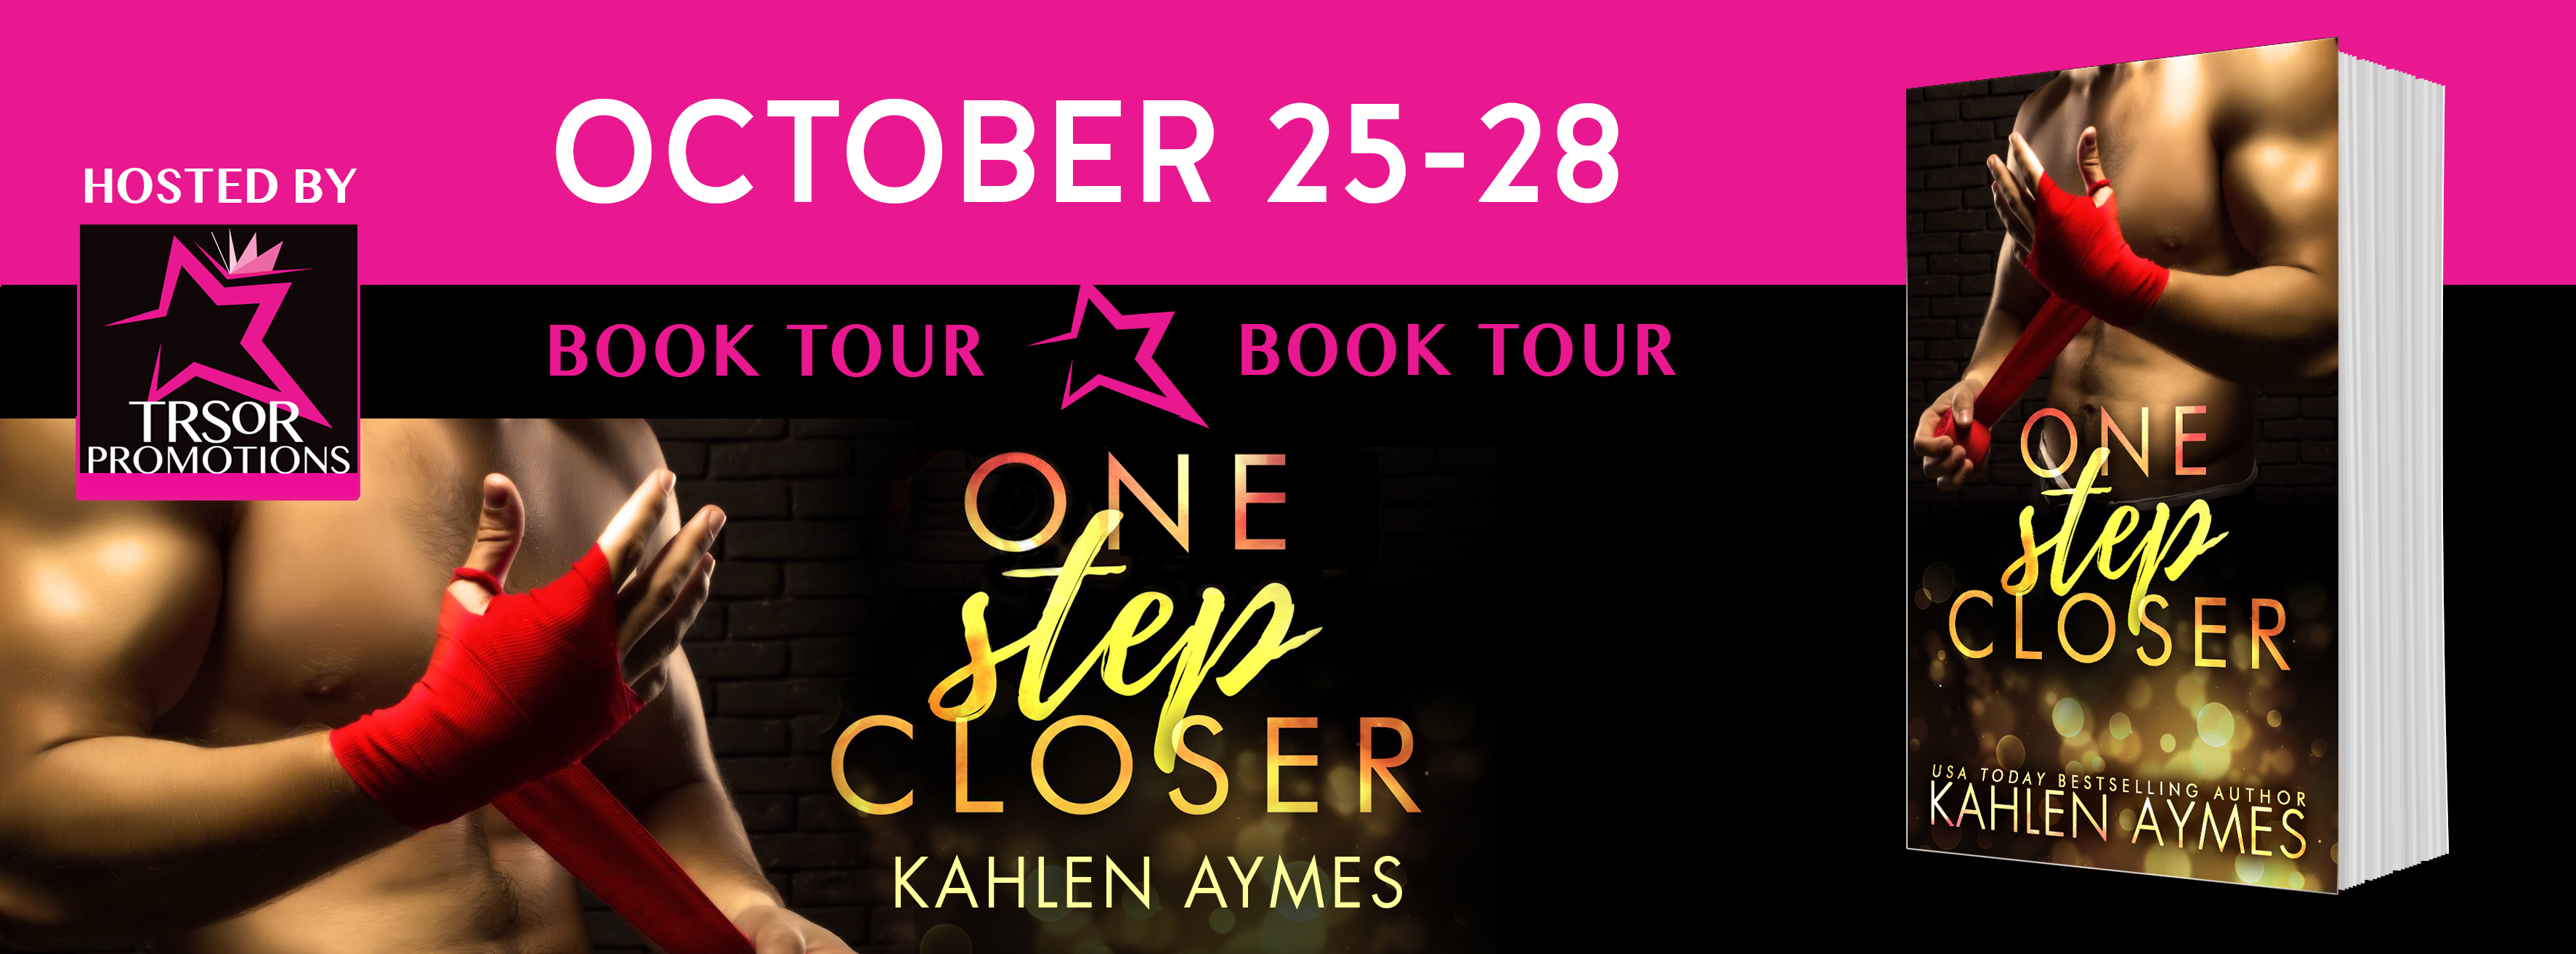 One Step Closer by Kahlen Aymes Blog Tour #Review